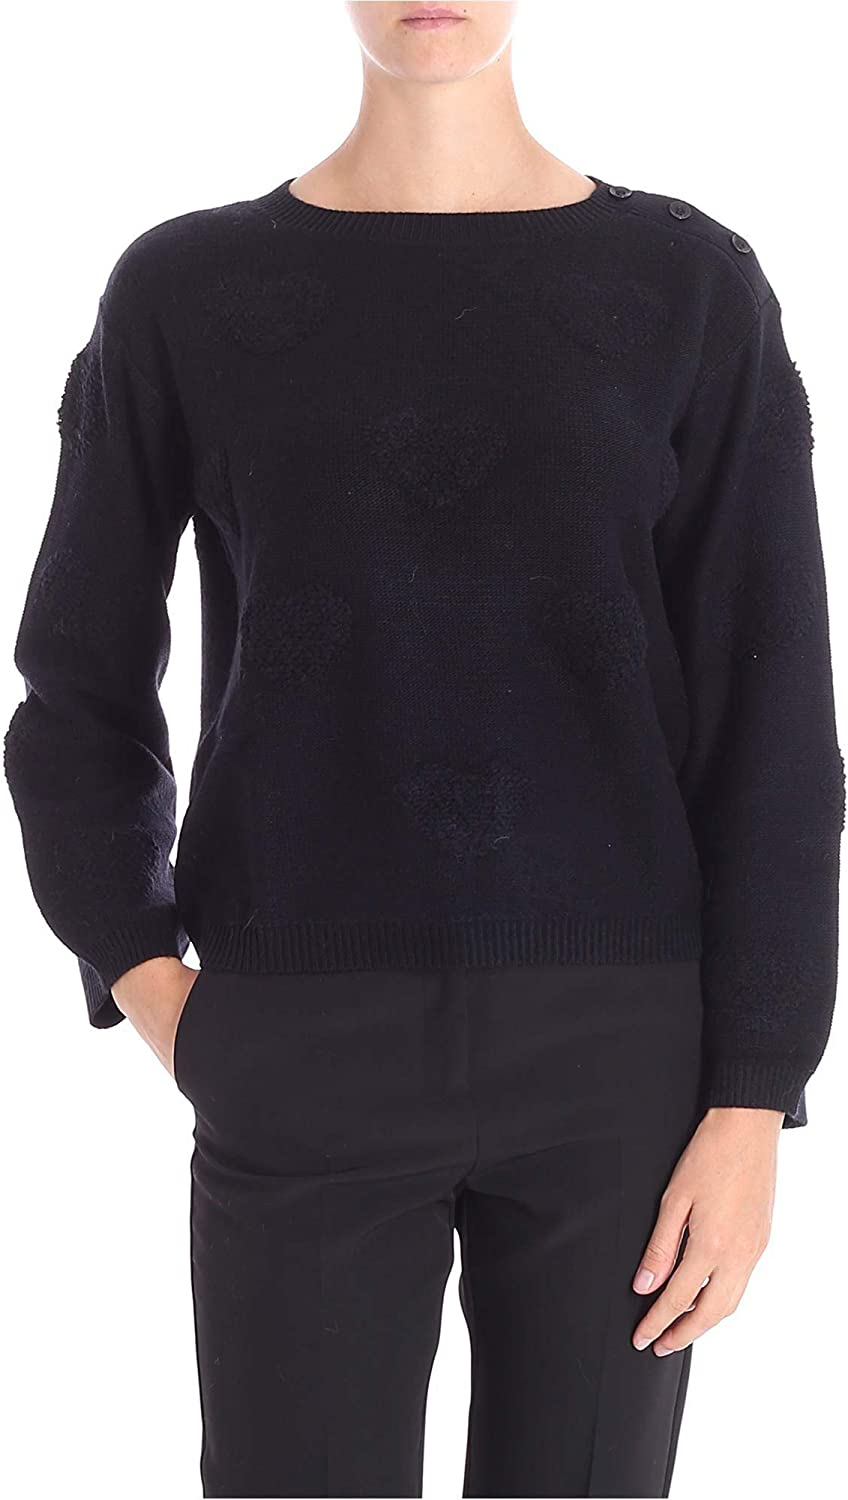 My Twin Women's JA83E100006 Black Acrylic Jumper